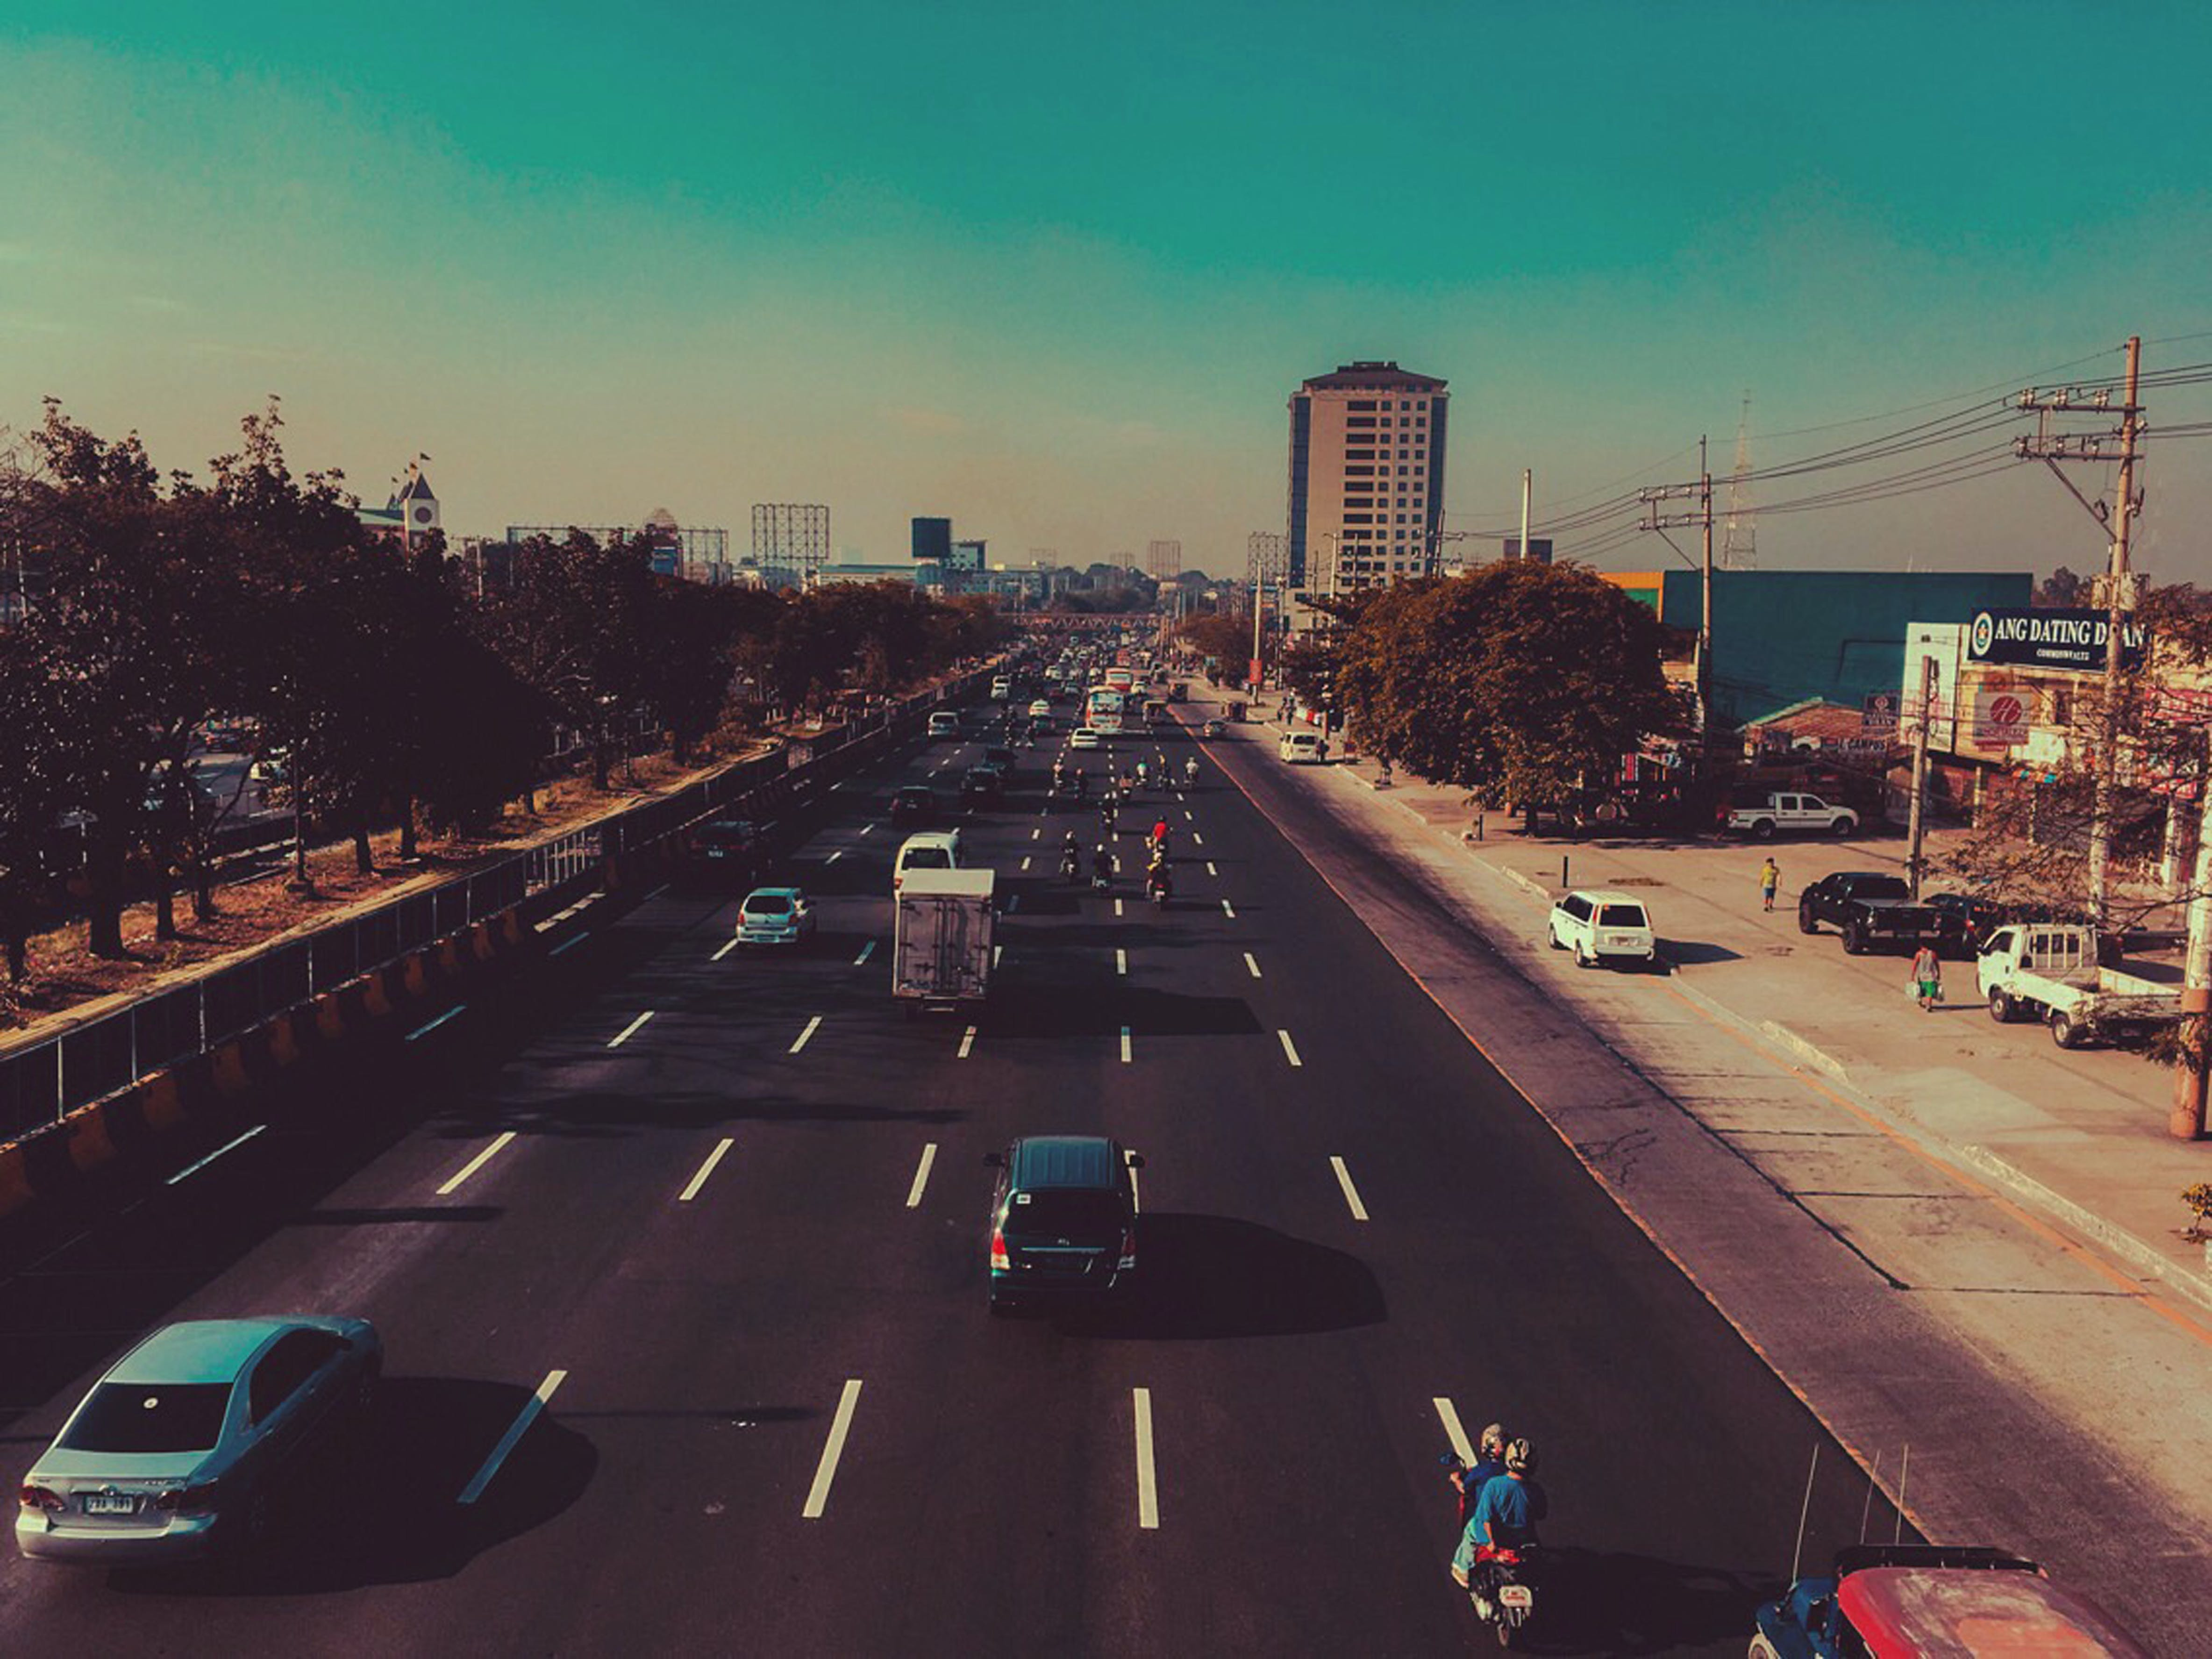 Cars in Black Concrete Road in Landscape Photography